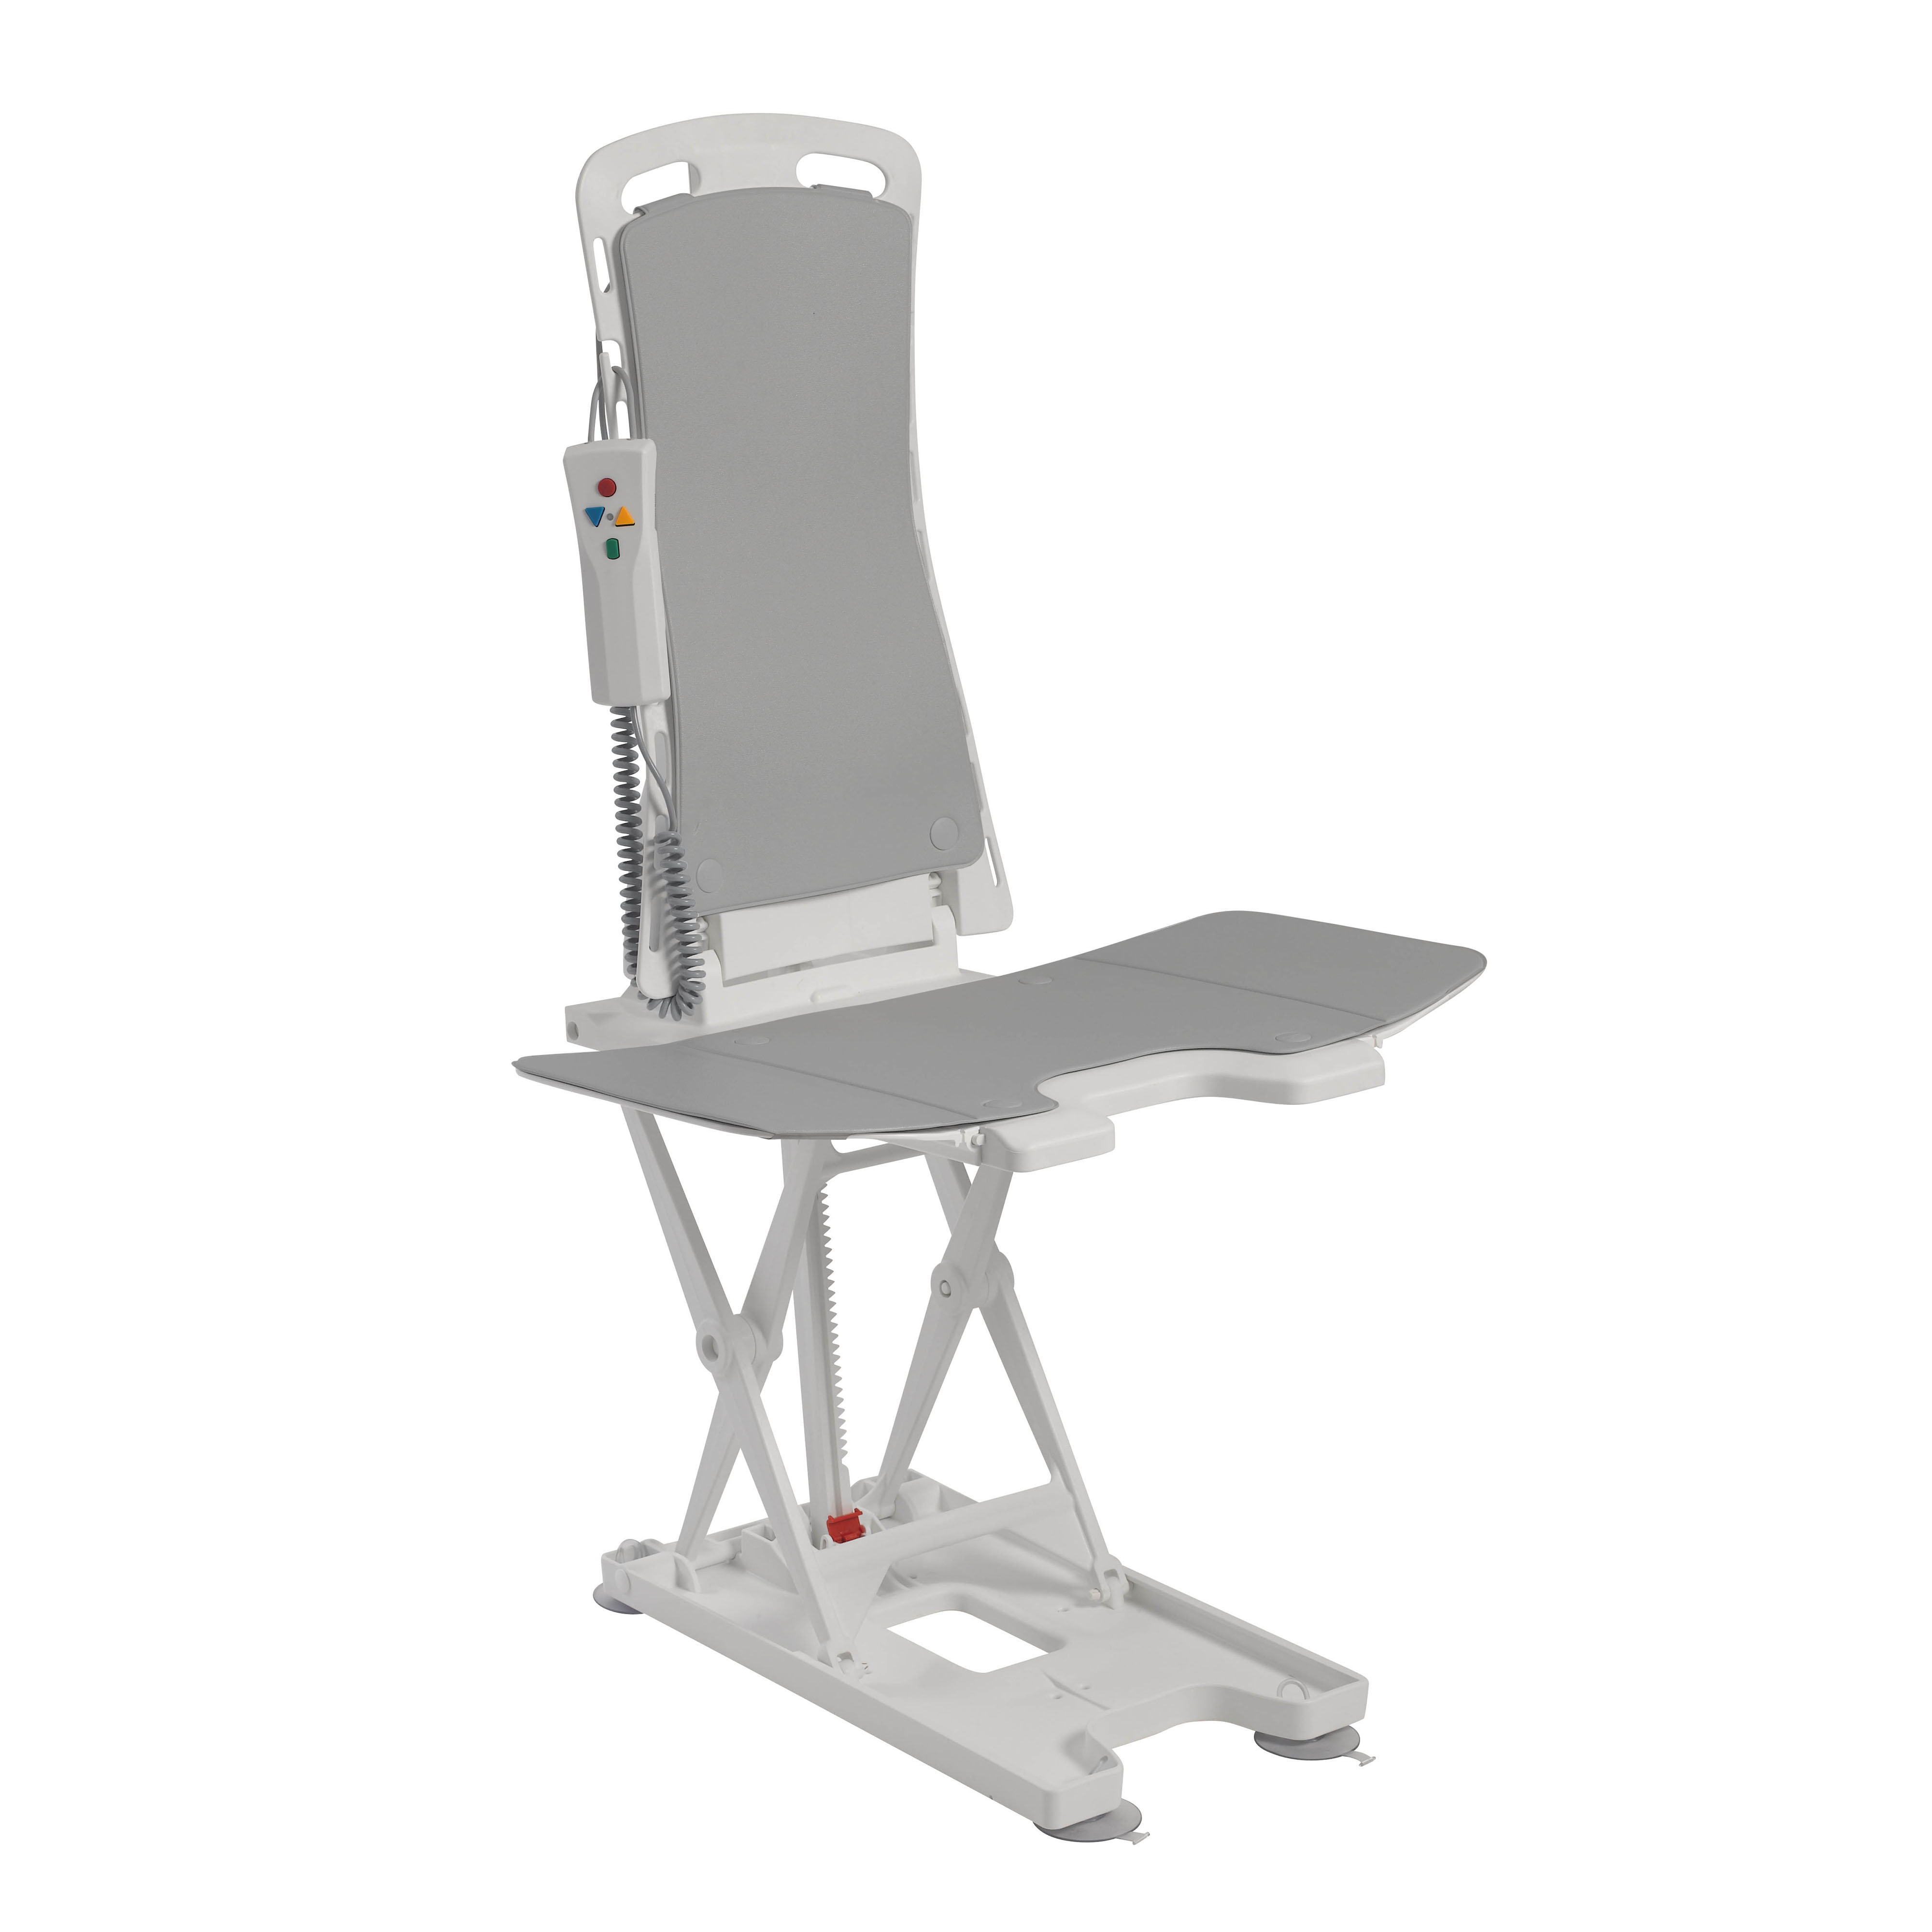 Bath Chair Lift The Bellavita Auto Bath Lift A Bathing Solution That Will